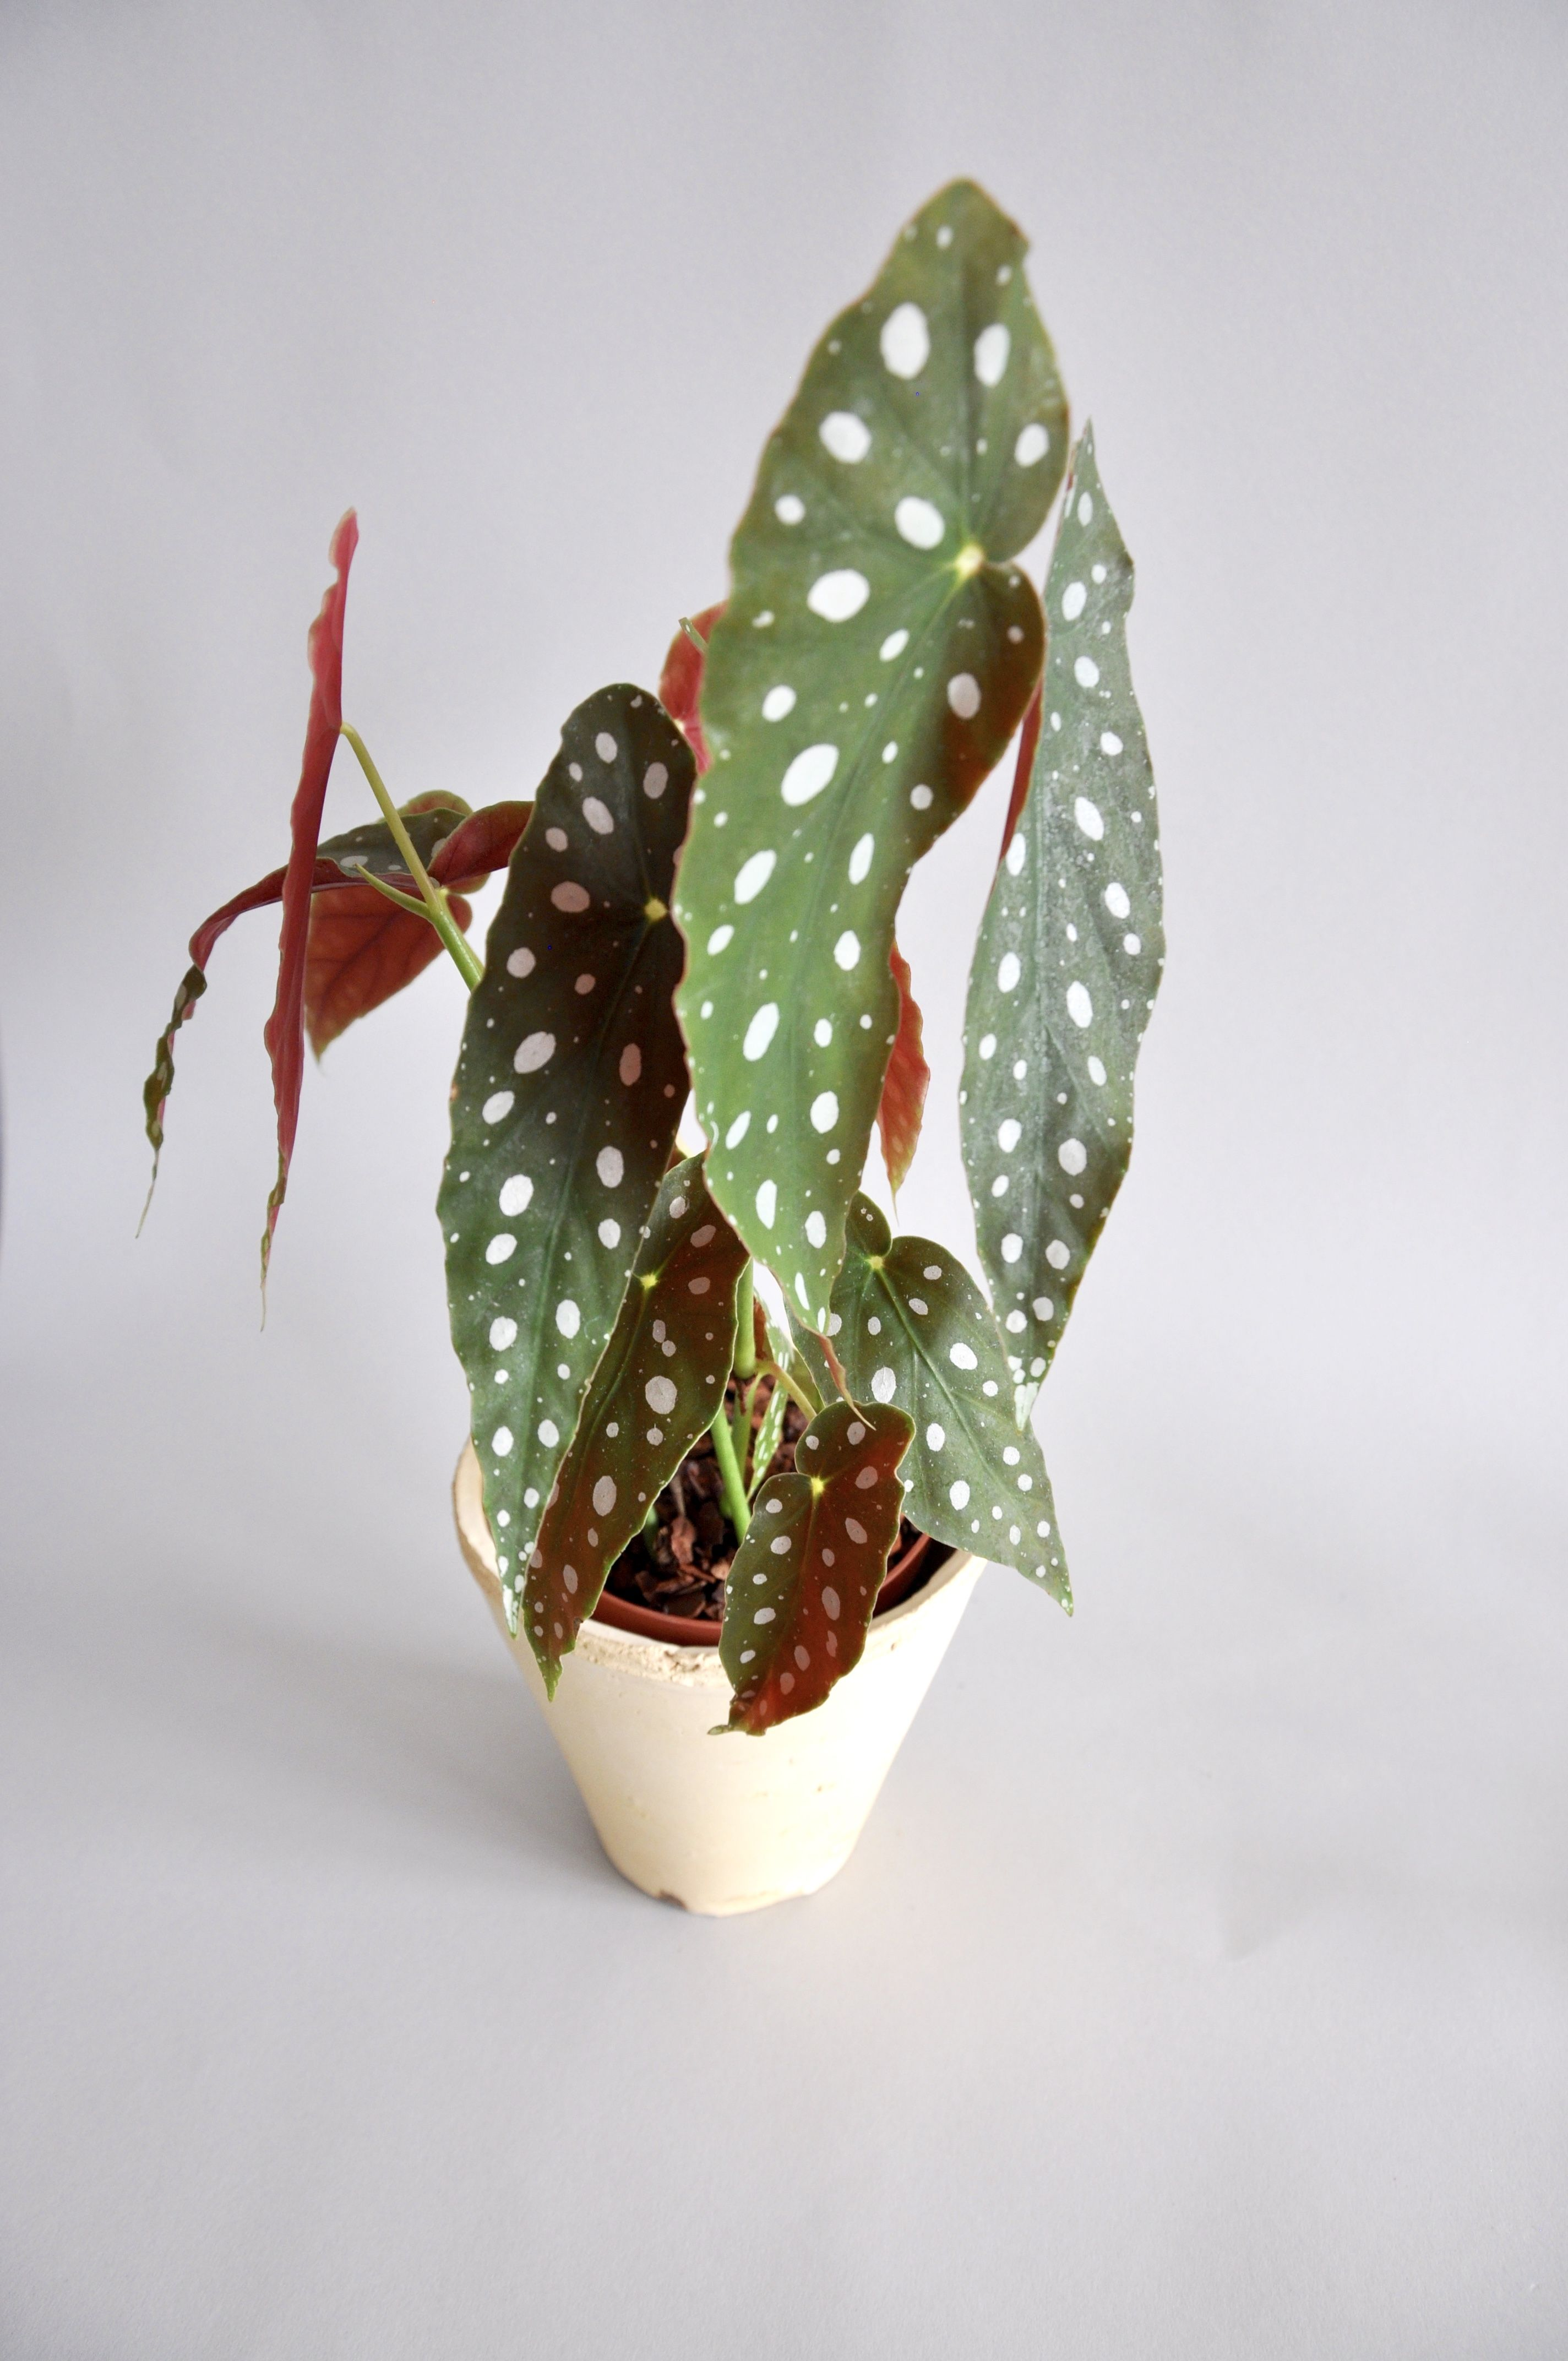 Begonia Maculata Wightii Also Known As Polka Dot Begonia With